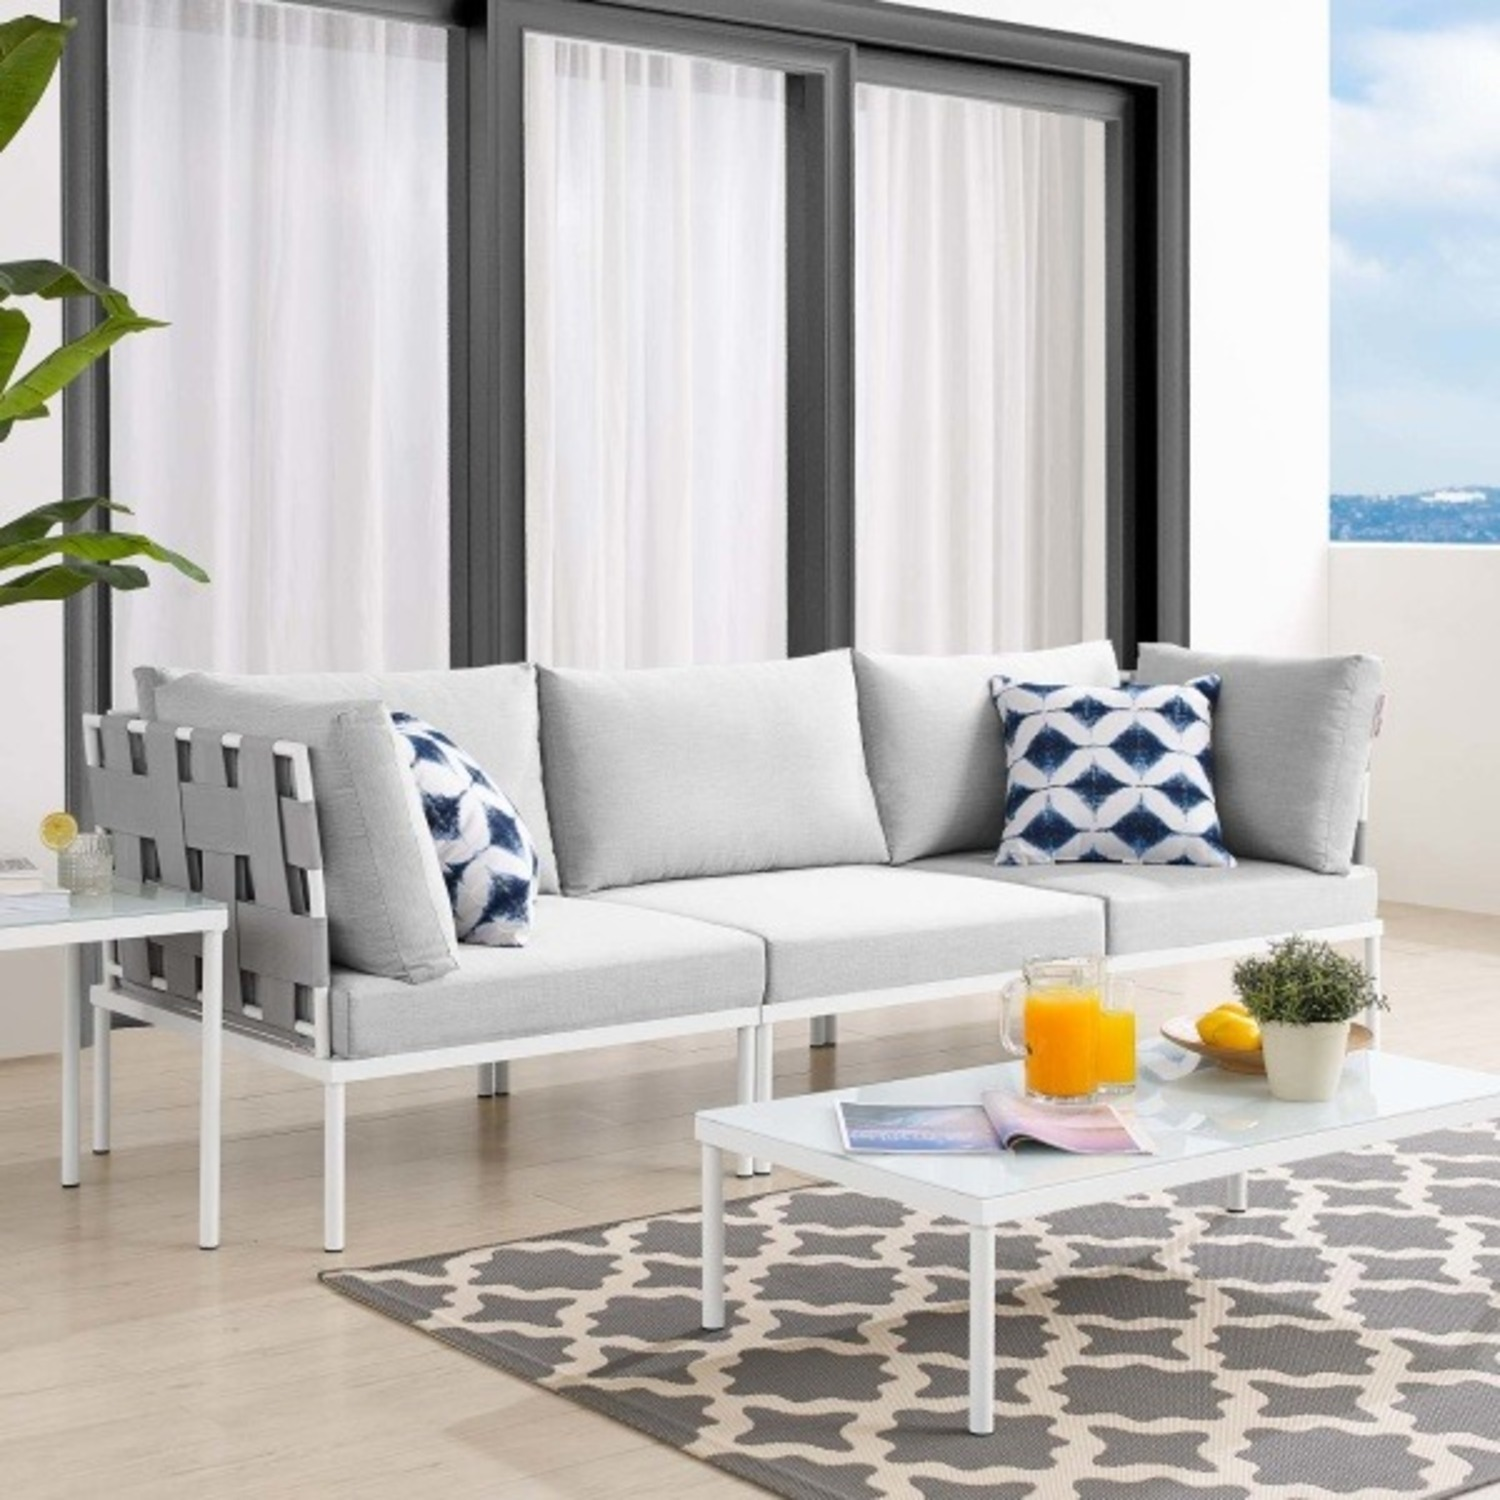 Outdoor Sofa In Gray Silk Weave & Gray Cushion - image-3